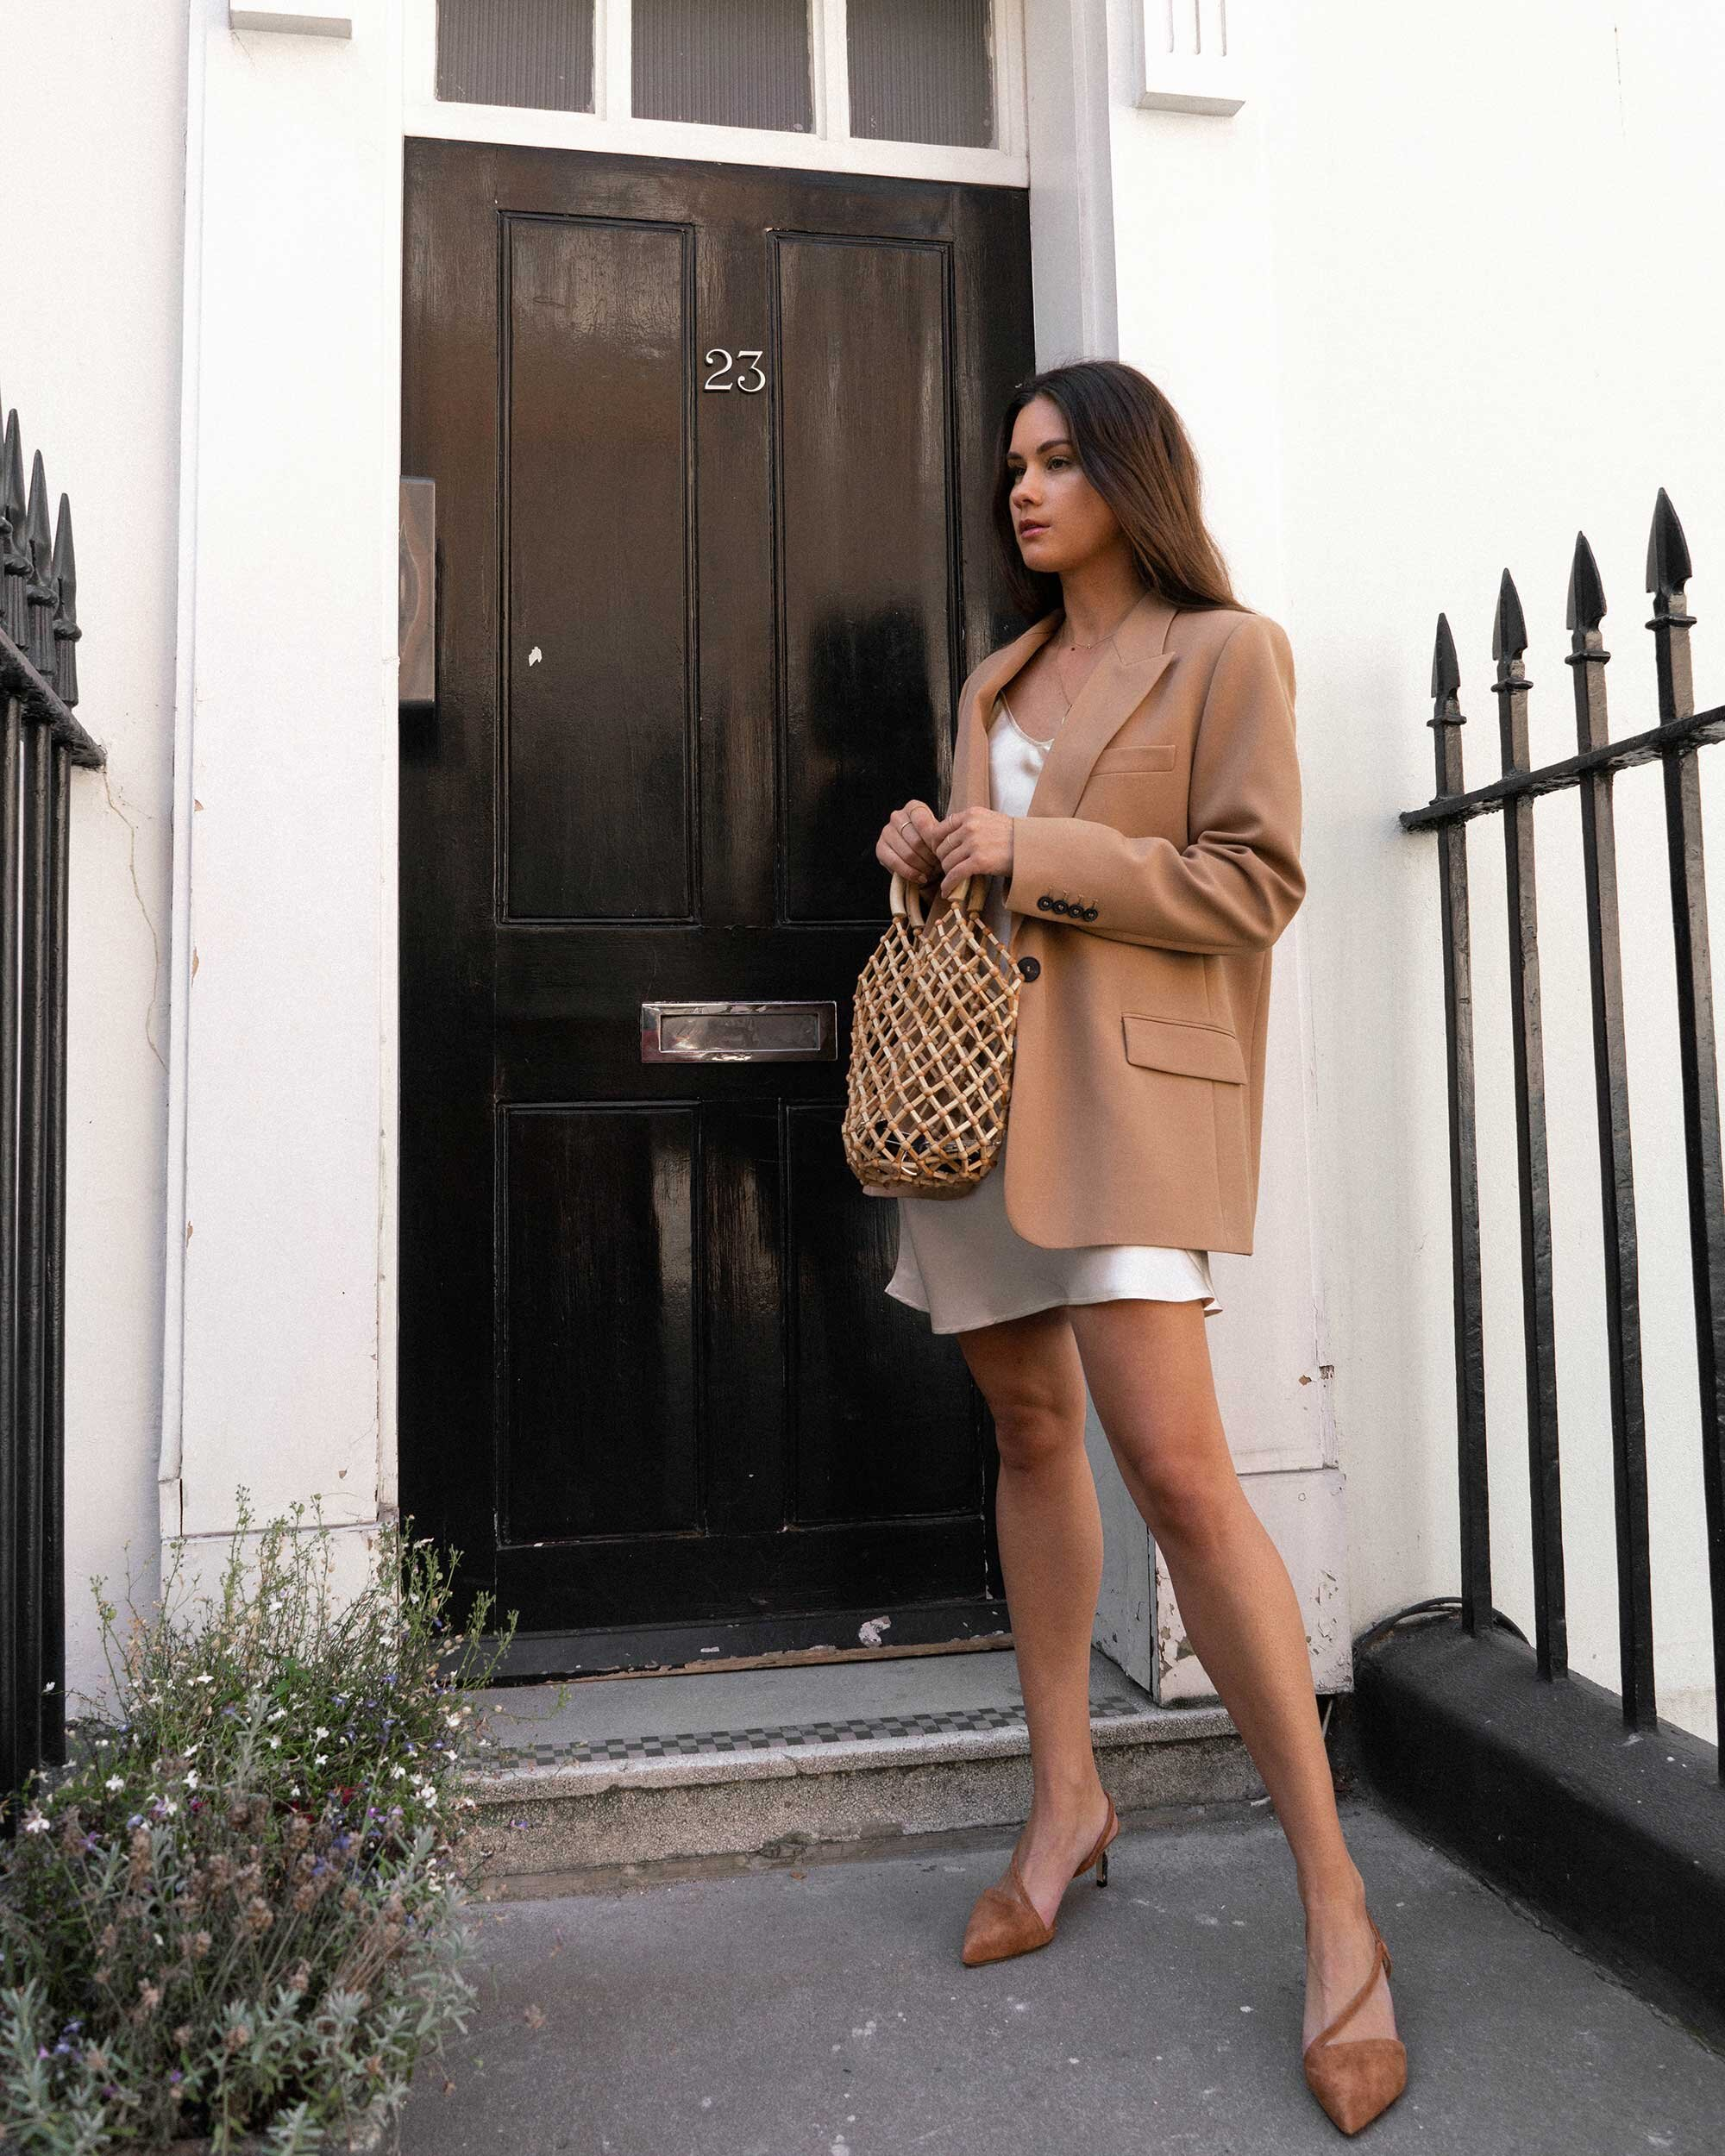 Sarah Butler of Sarah Styles Seattle wears ivory Slip dress and tan blazer in London | @sarahchristine -3.jpg